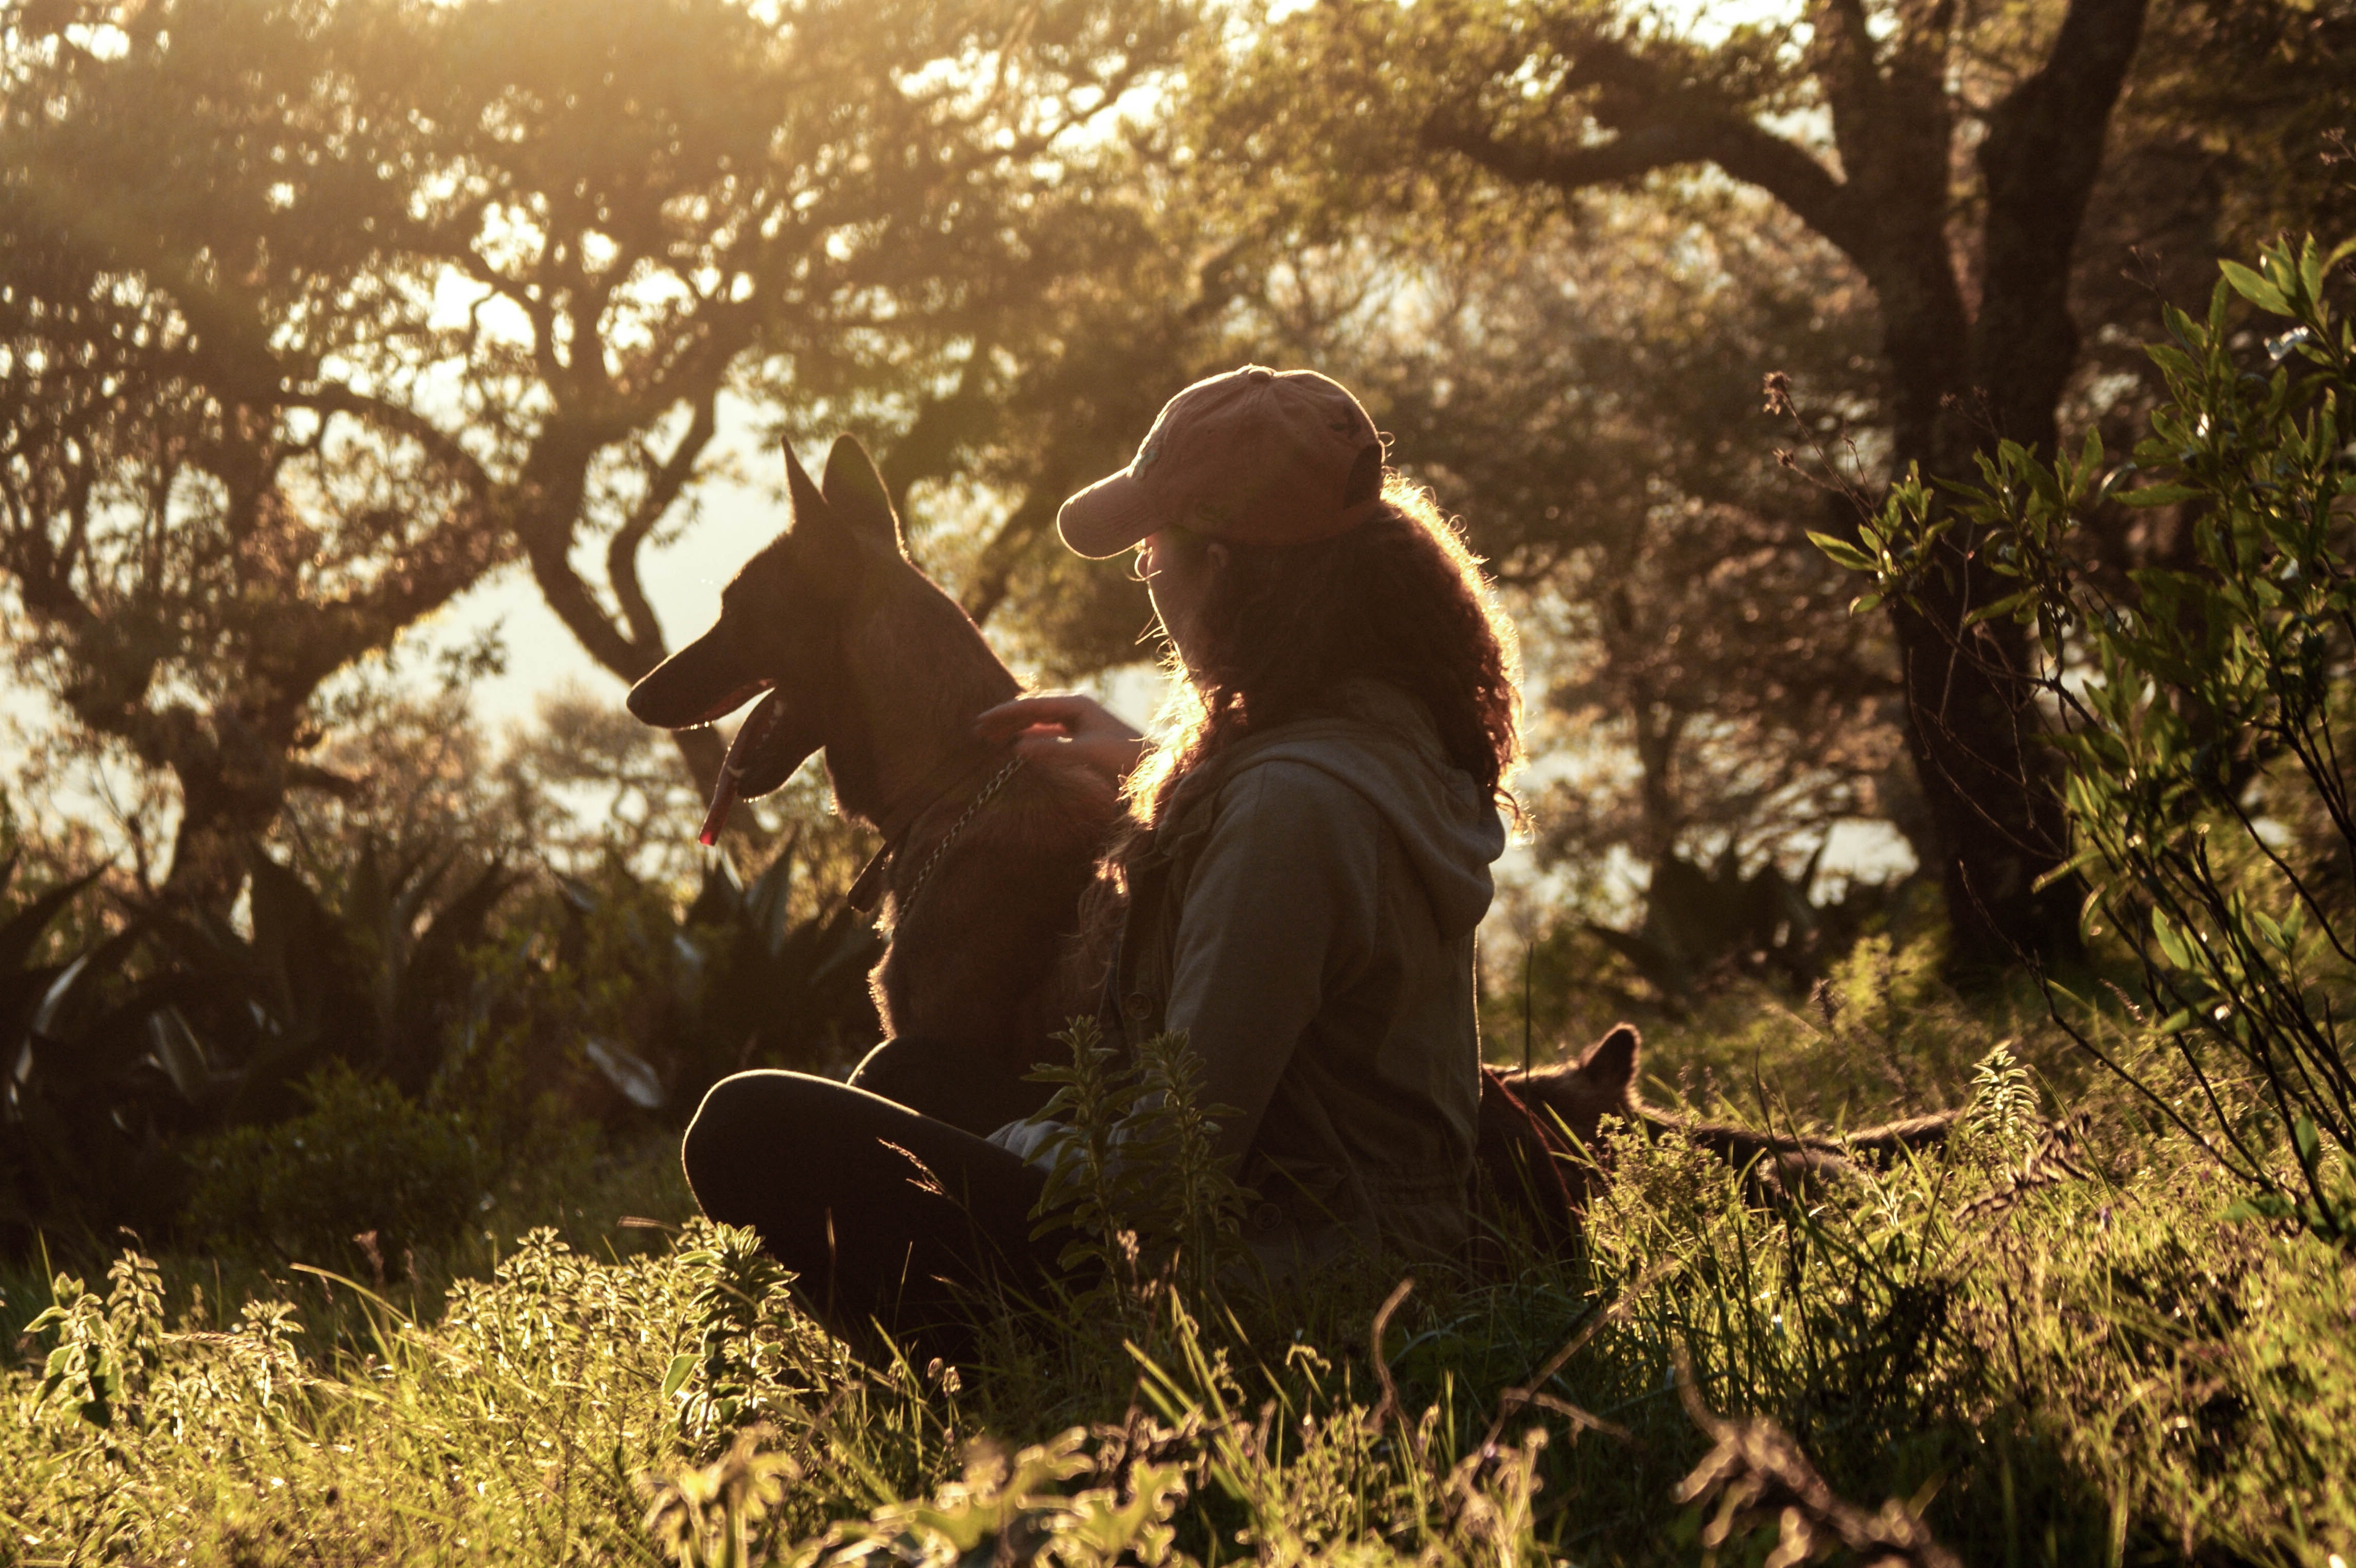 A woman in a cap sits with her dog on grass in front of sunny trees